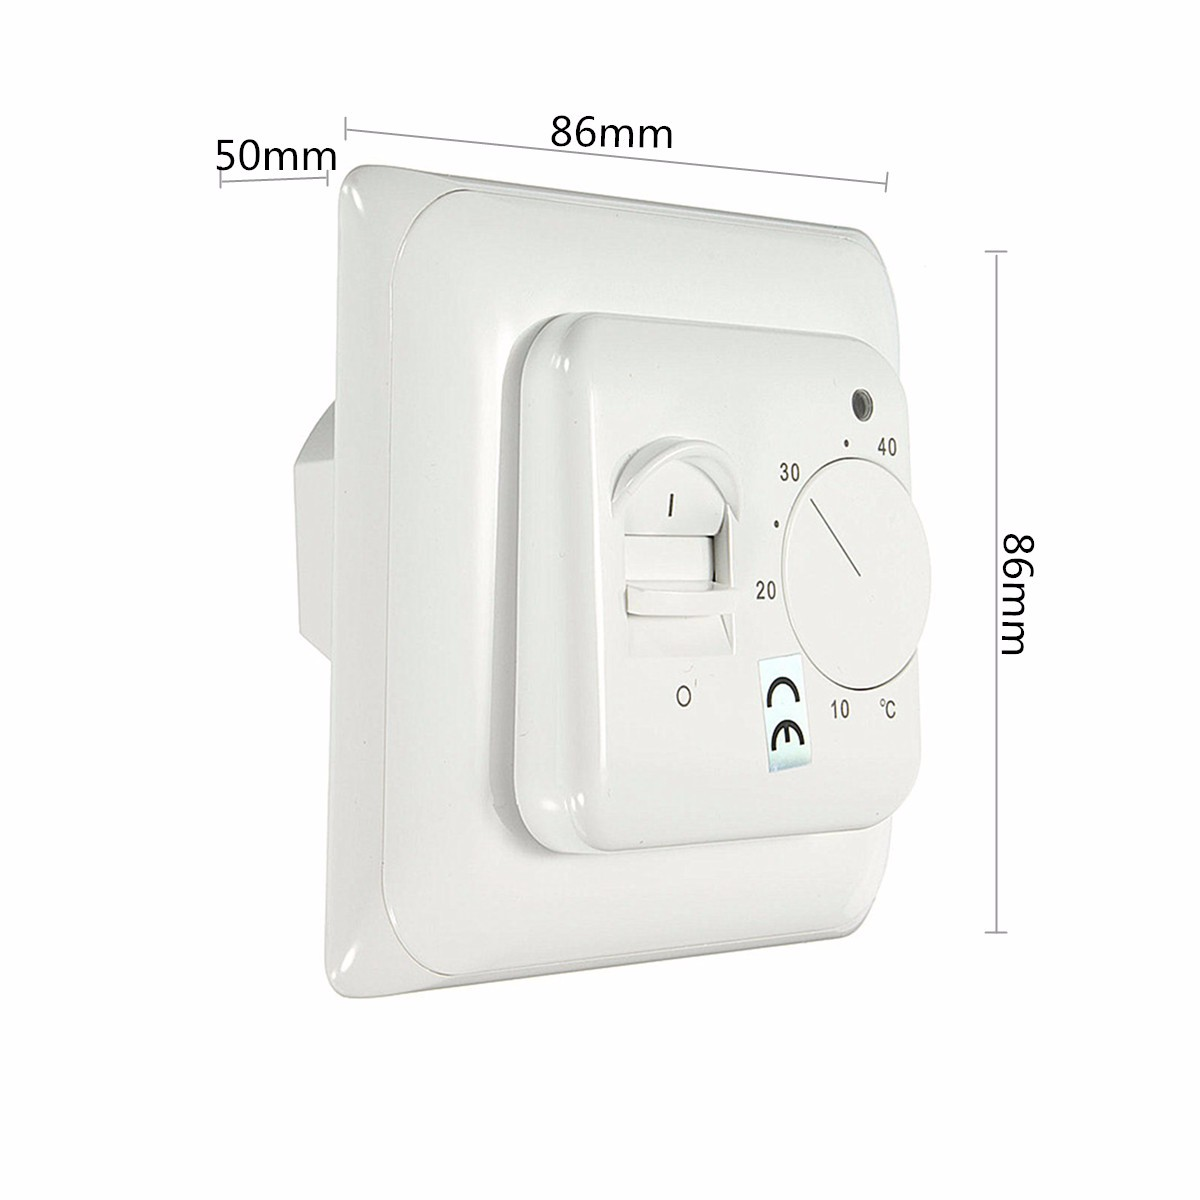 Heating Thermostat 230v Manual Heating Thermostat For Underfloor Electric Heating System 16amp Room